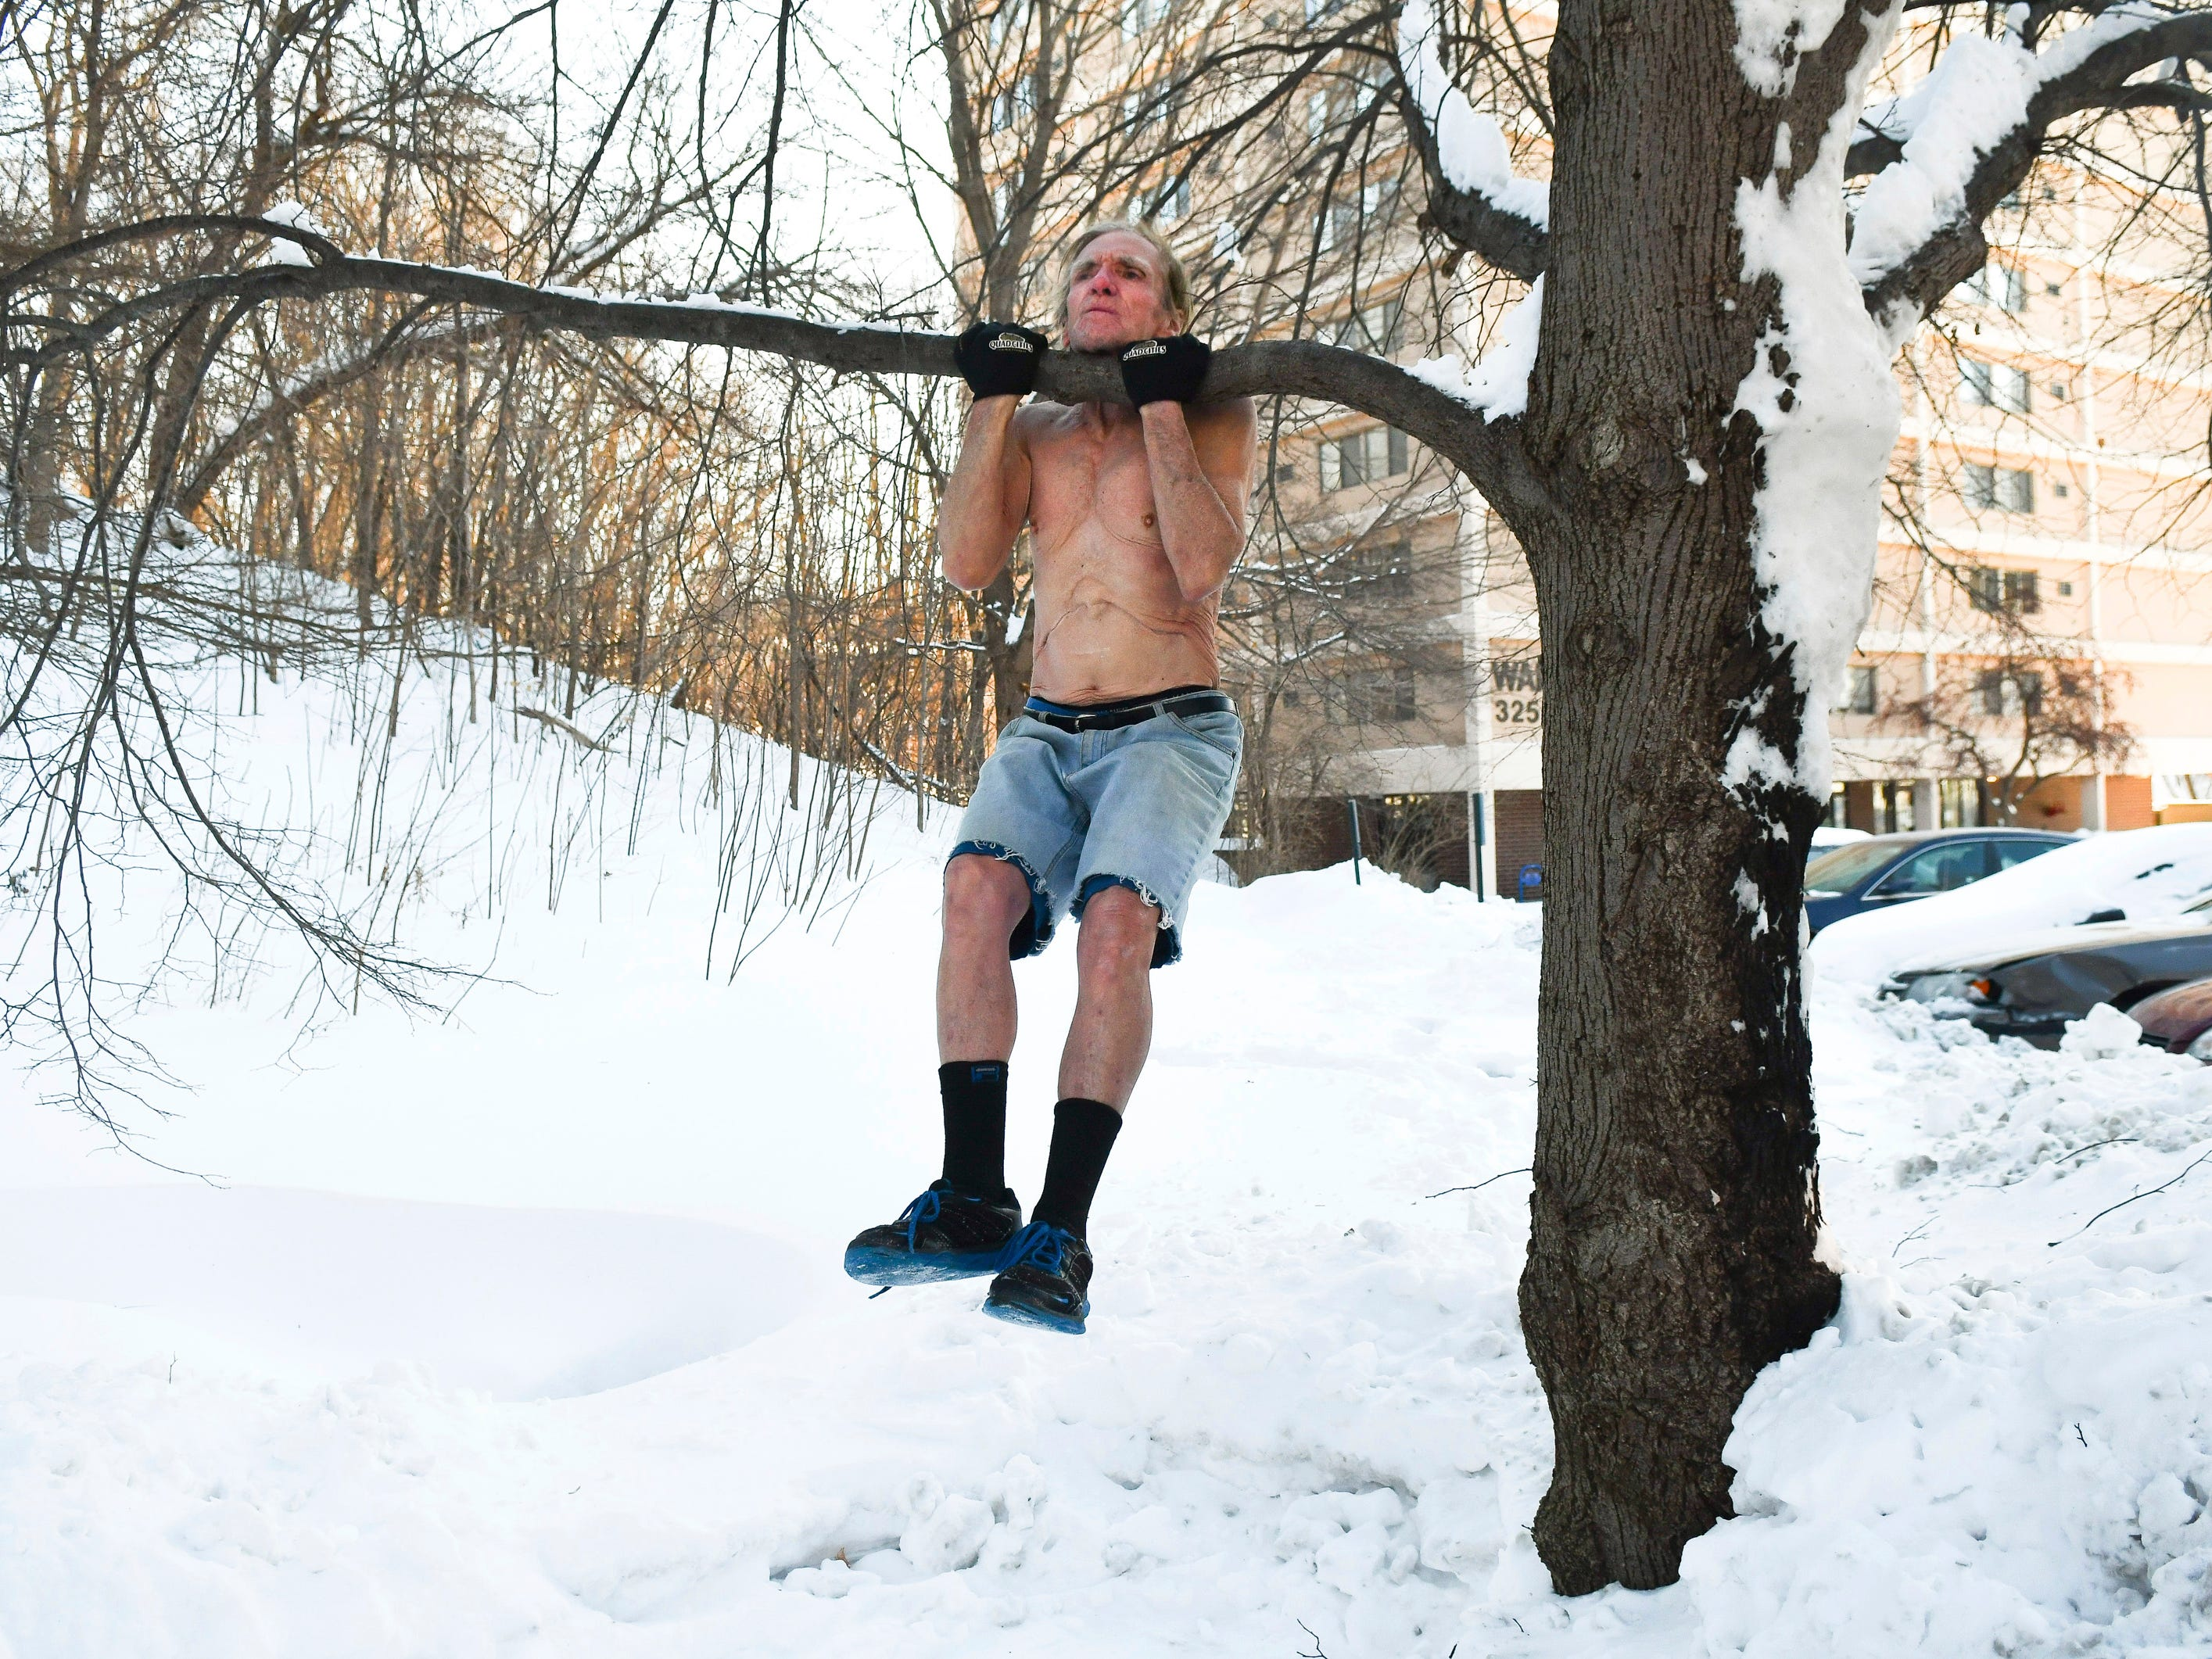 "John C. Anderson, 74, braves a minus 27 windchill to do shirtless pull-ups on a tree branch outside, in Silvis, Ill.. Jan. 30, 2019. ""It's going to be a historically cold day and I wanted to do something nobody else dare do,"" said Anderson, who is known for his fitness stunts. ""A lot of people think all old people are cold, they got cold blood...I wanted to show them not all old people are that cold blooded, certainly I'm not,"" said Anderson."